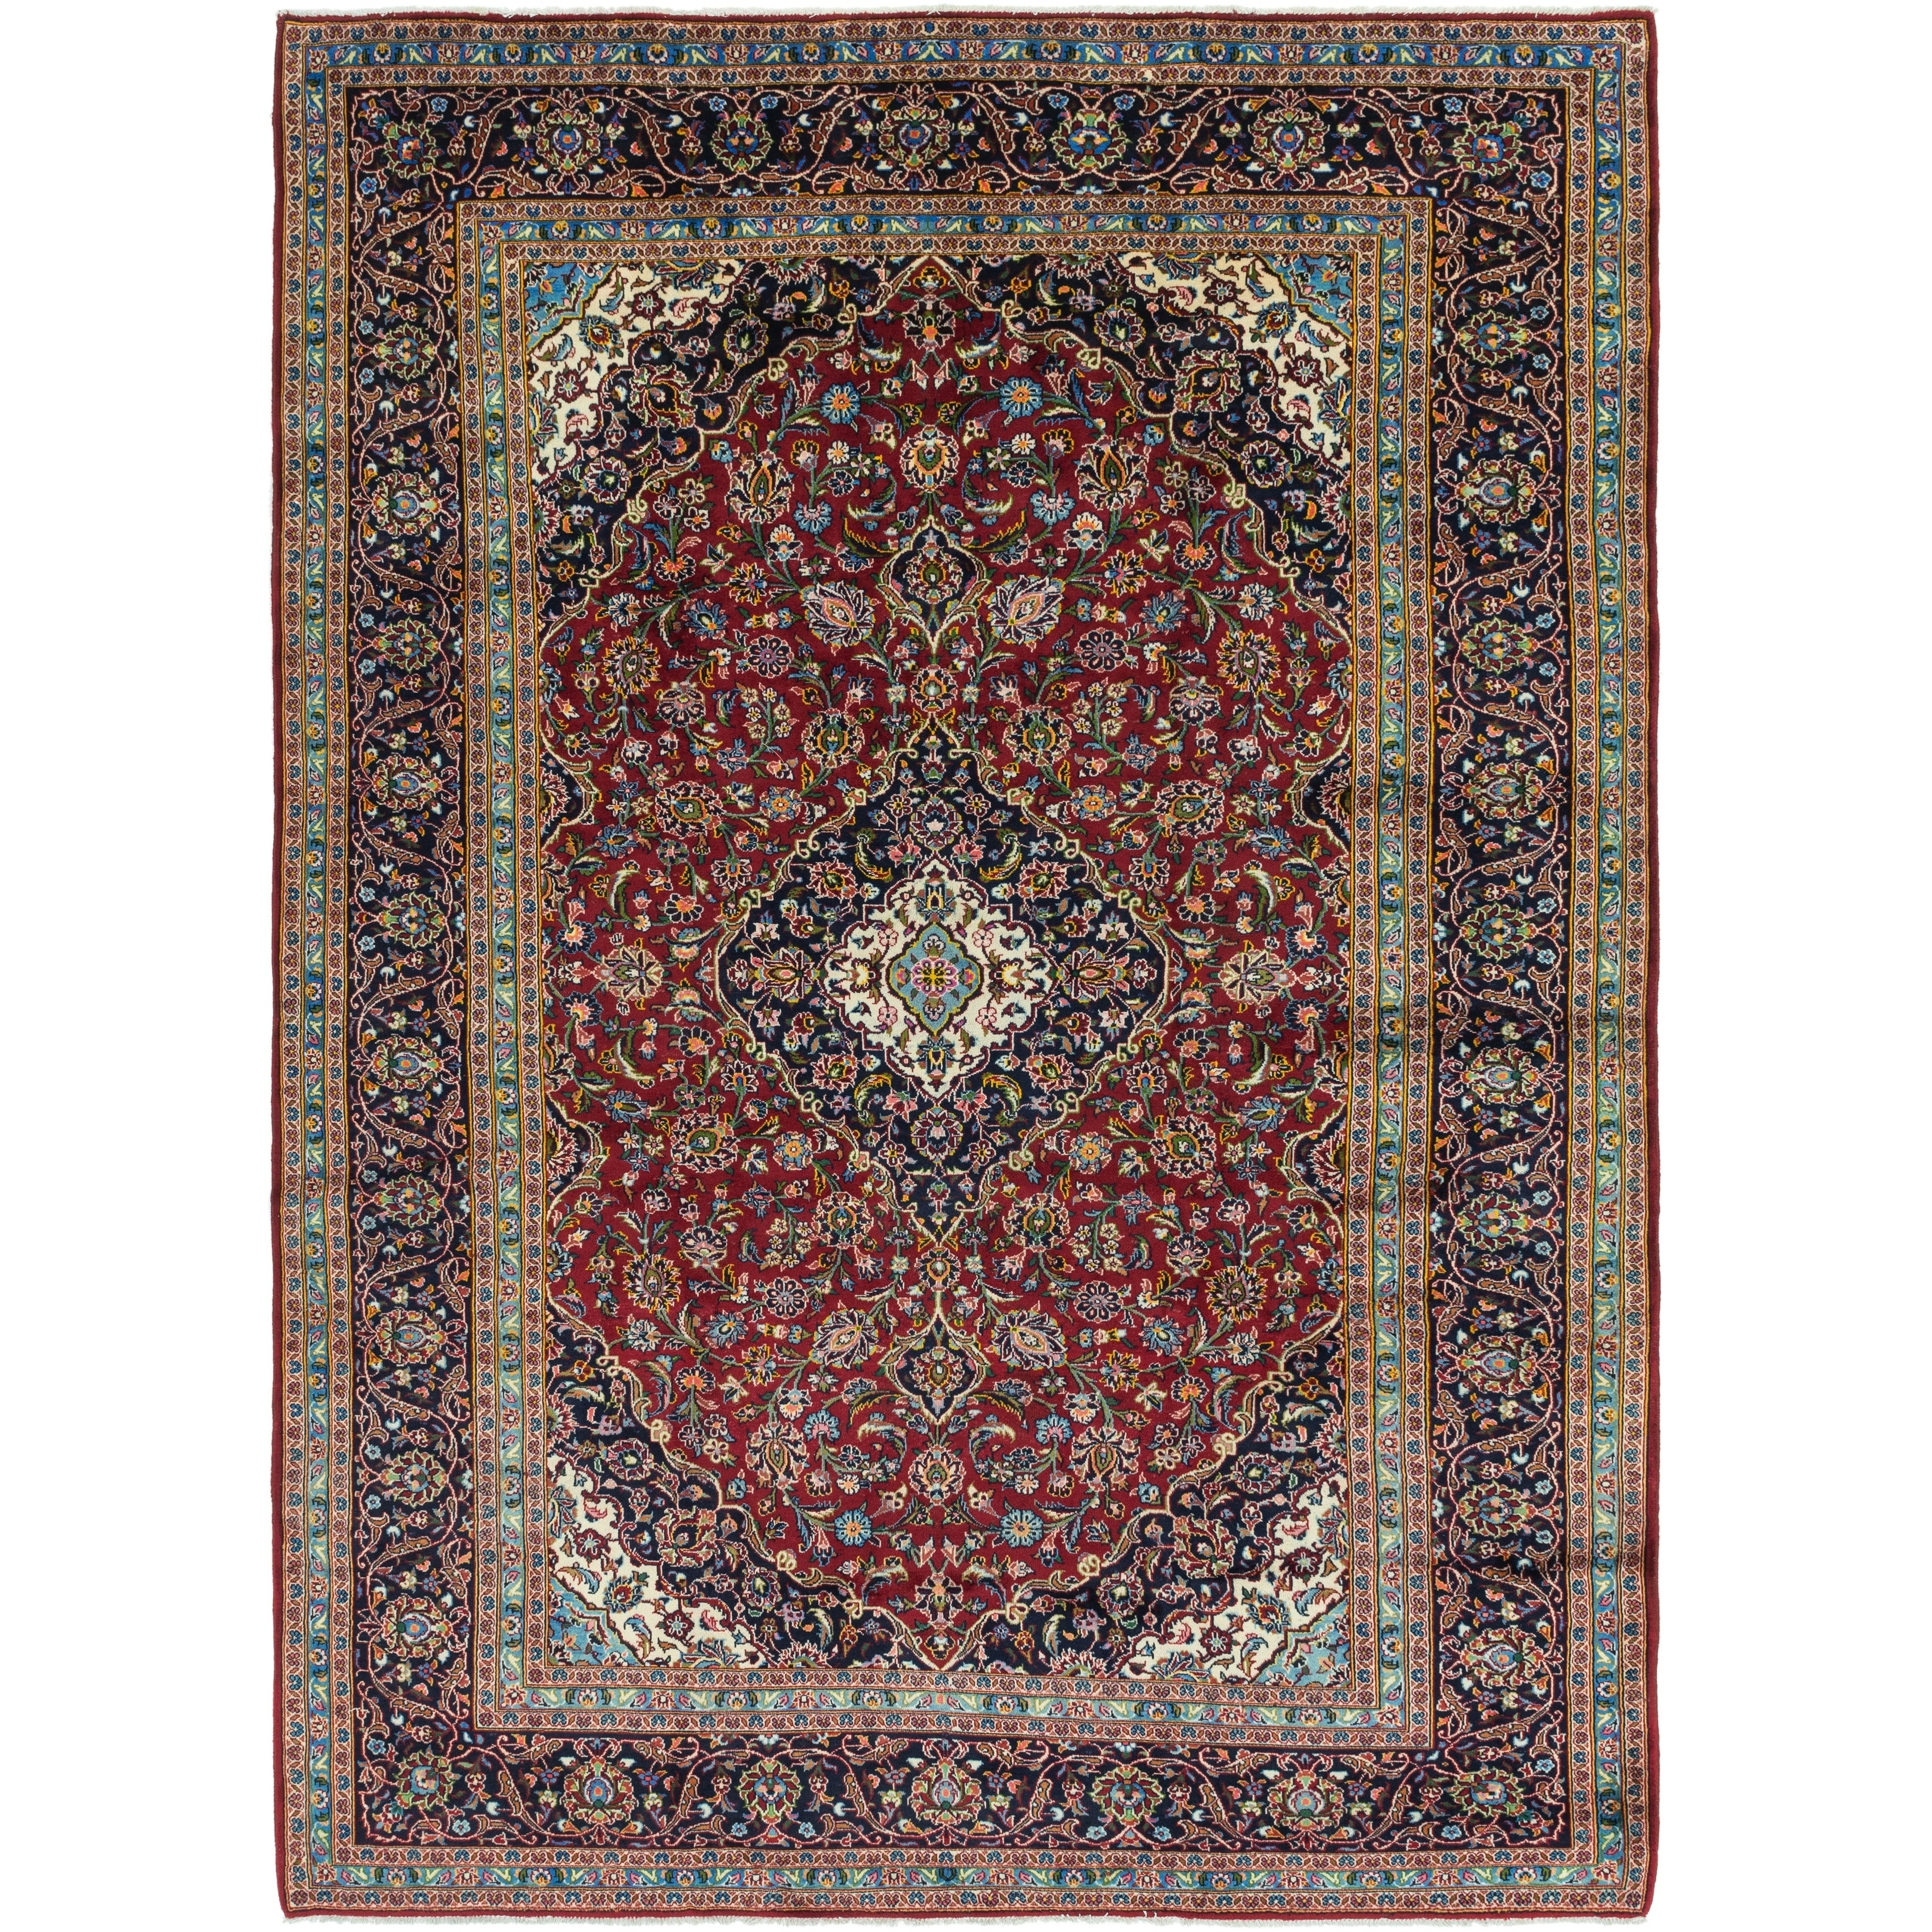 Hand Knotted Kashan Wool Area Rug - 9 9 x 13 3 (Red - 9 9 x 13 3)